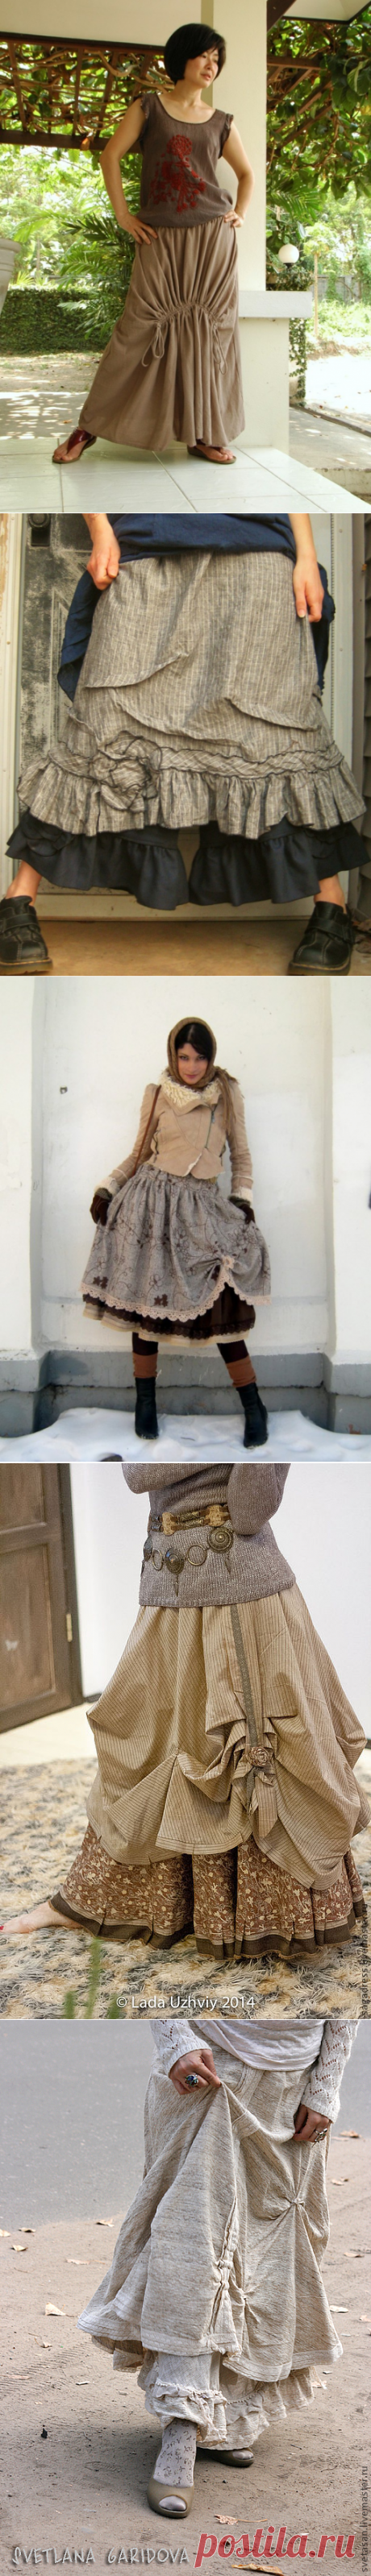 37 ideas for a skirt in bokho style - To wizard